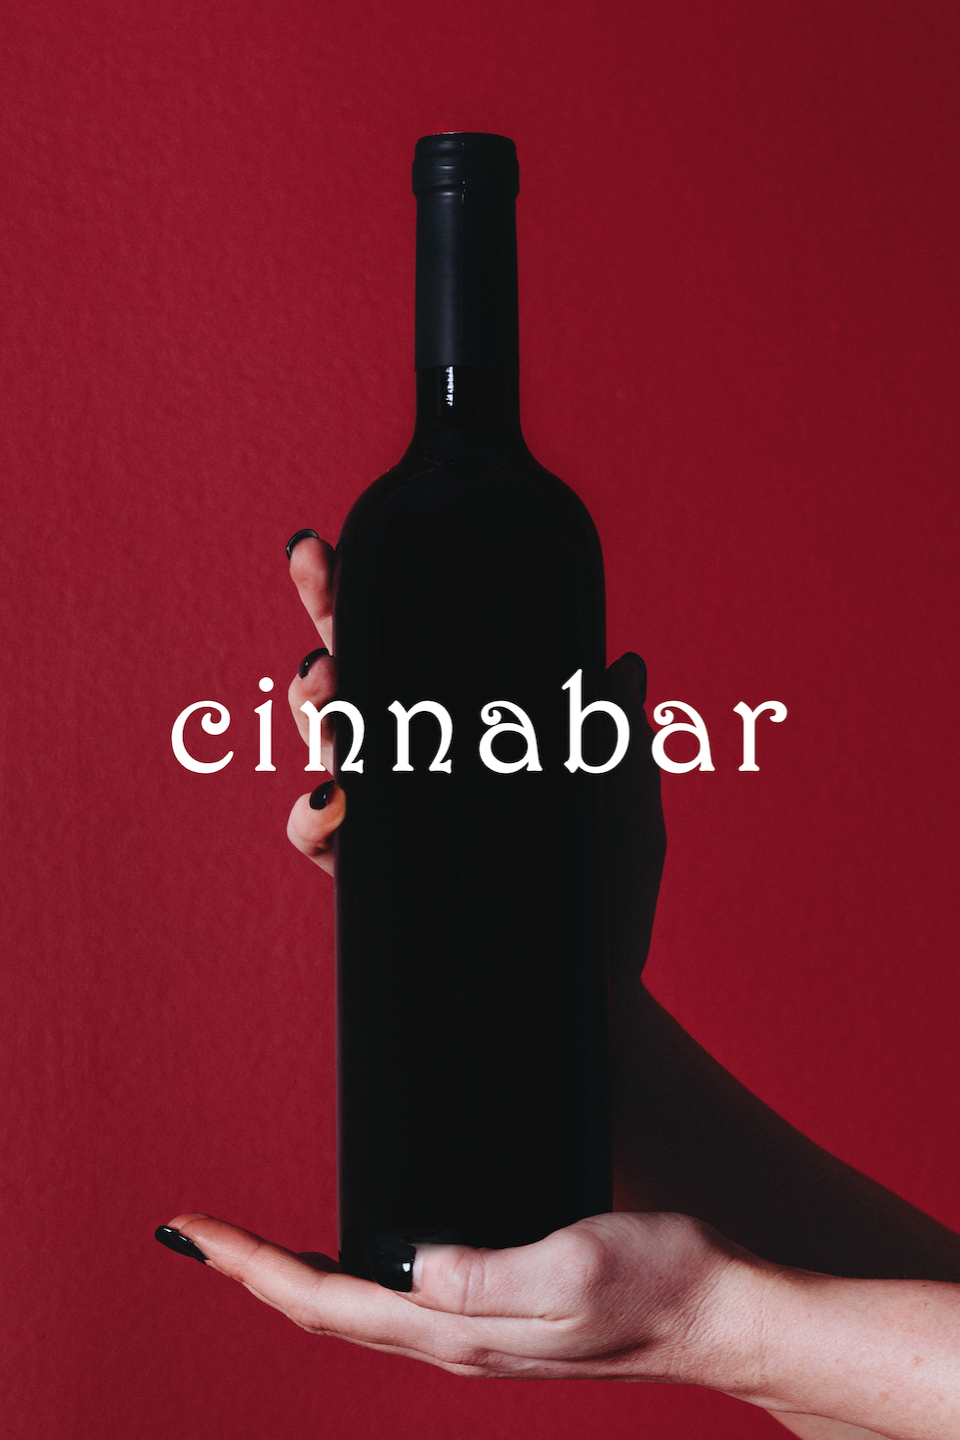 Giveaway! - Pssst! Check out our facebook before you book your next Cinnabar dining experience...